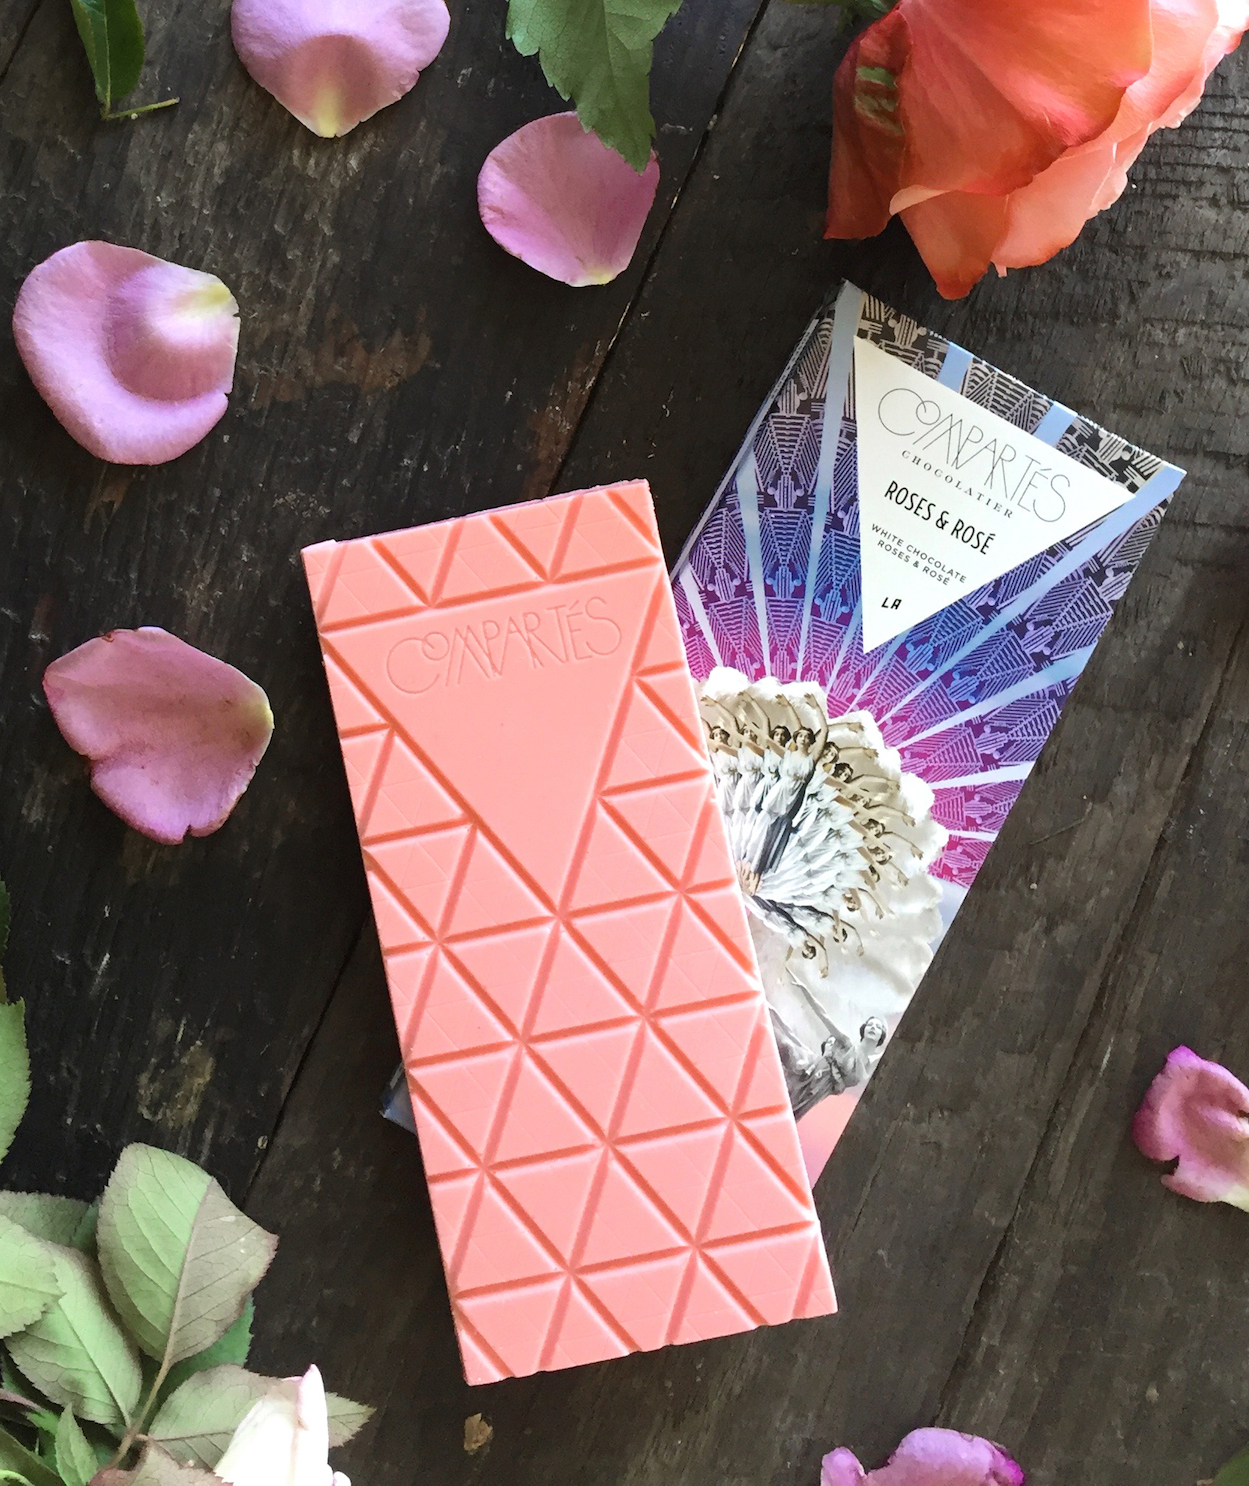 We Tried the New Rosé Chocolate Bar